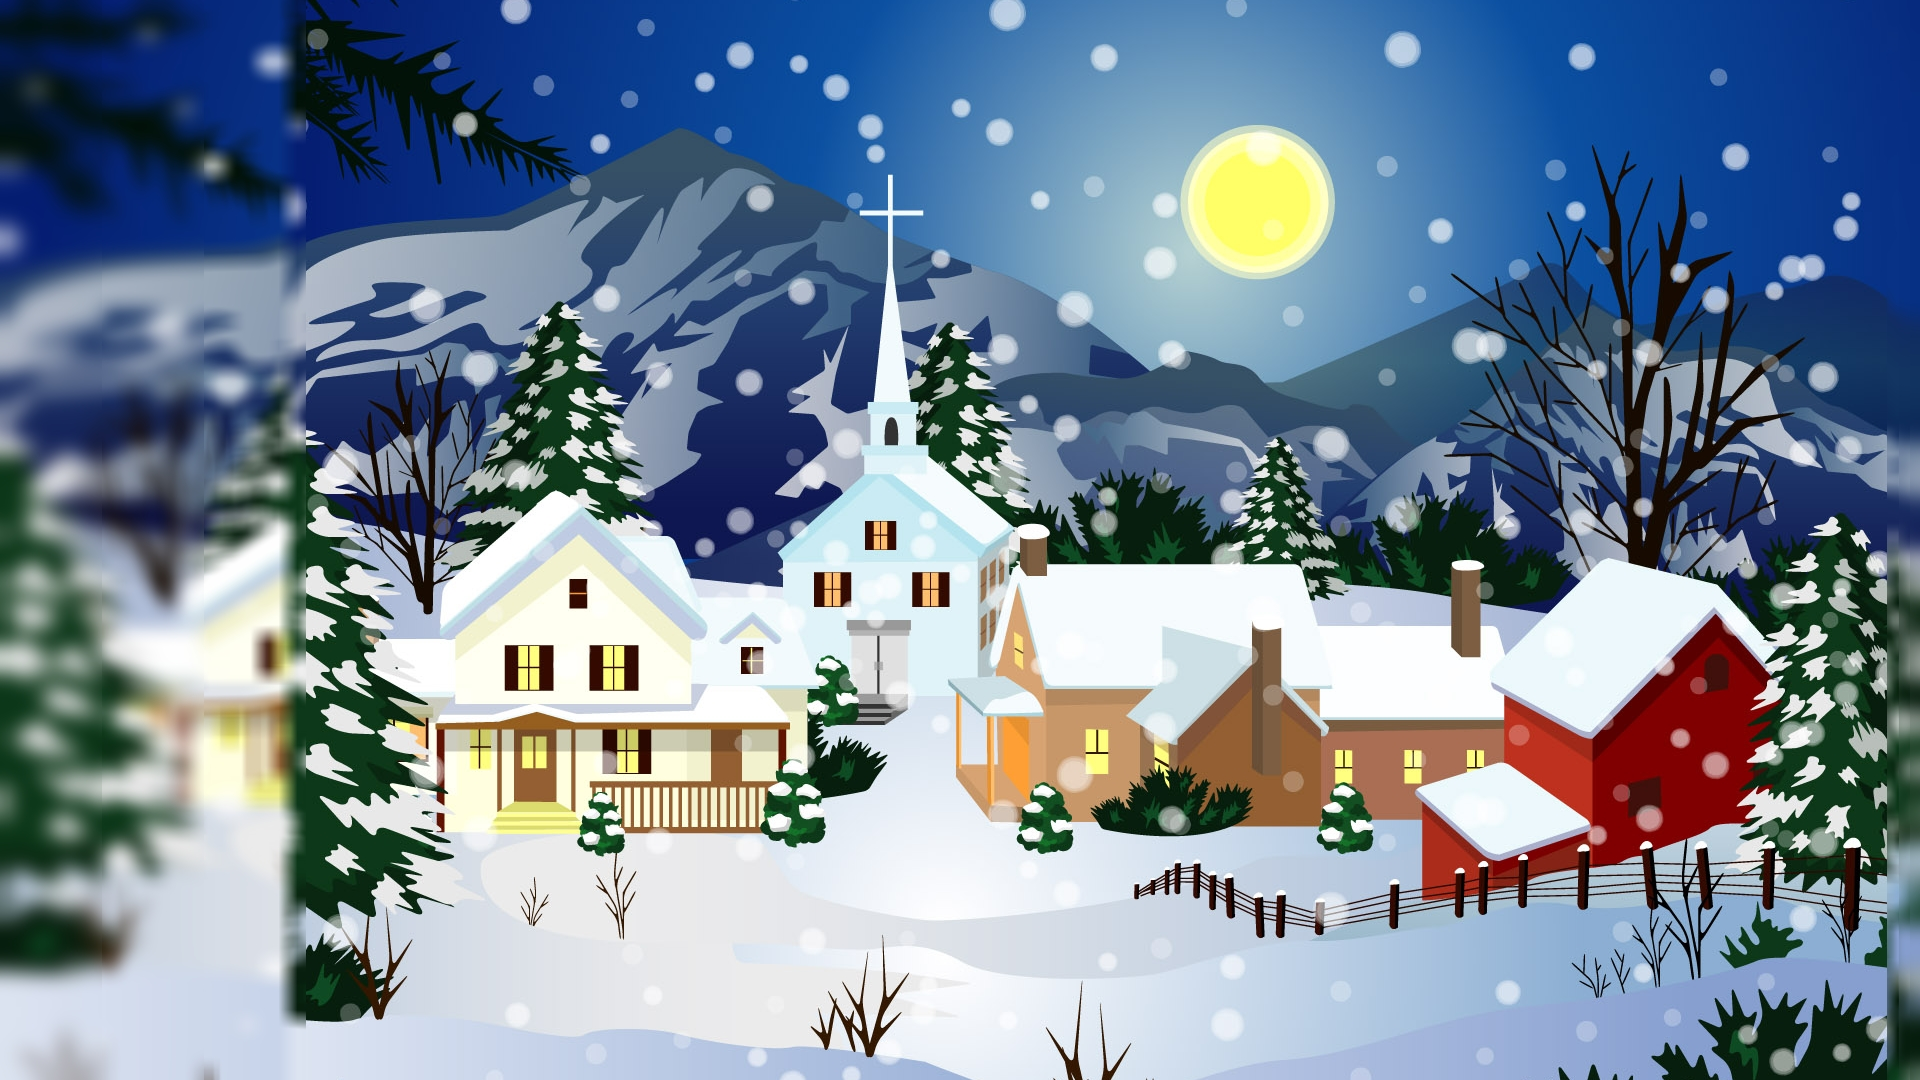 Animated Christmas Hd Wallpaper Hd Latest Wallpapers